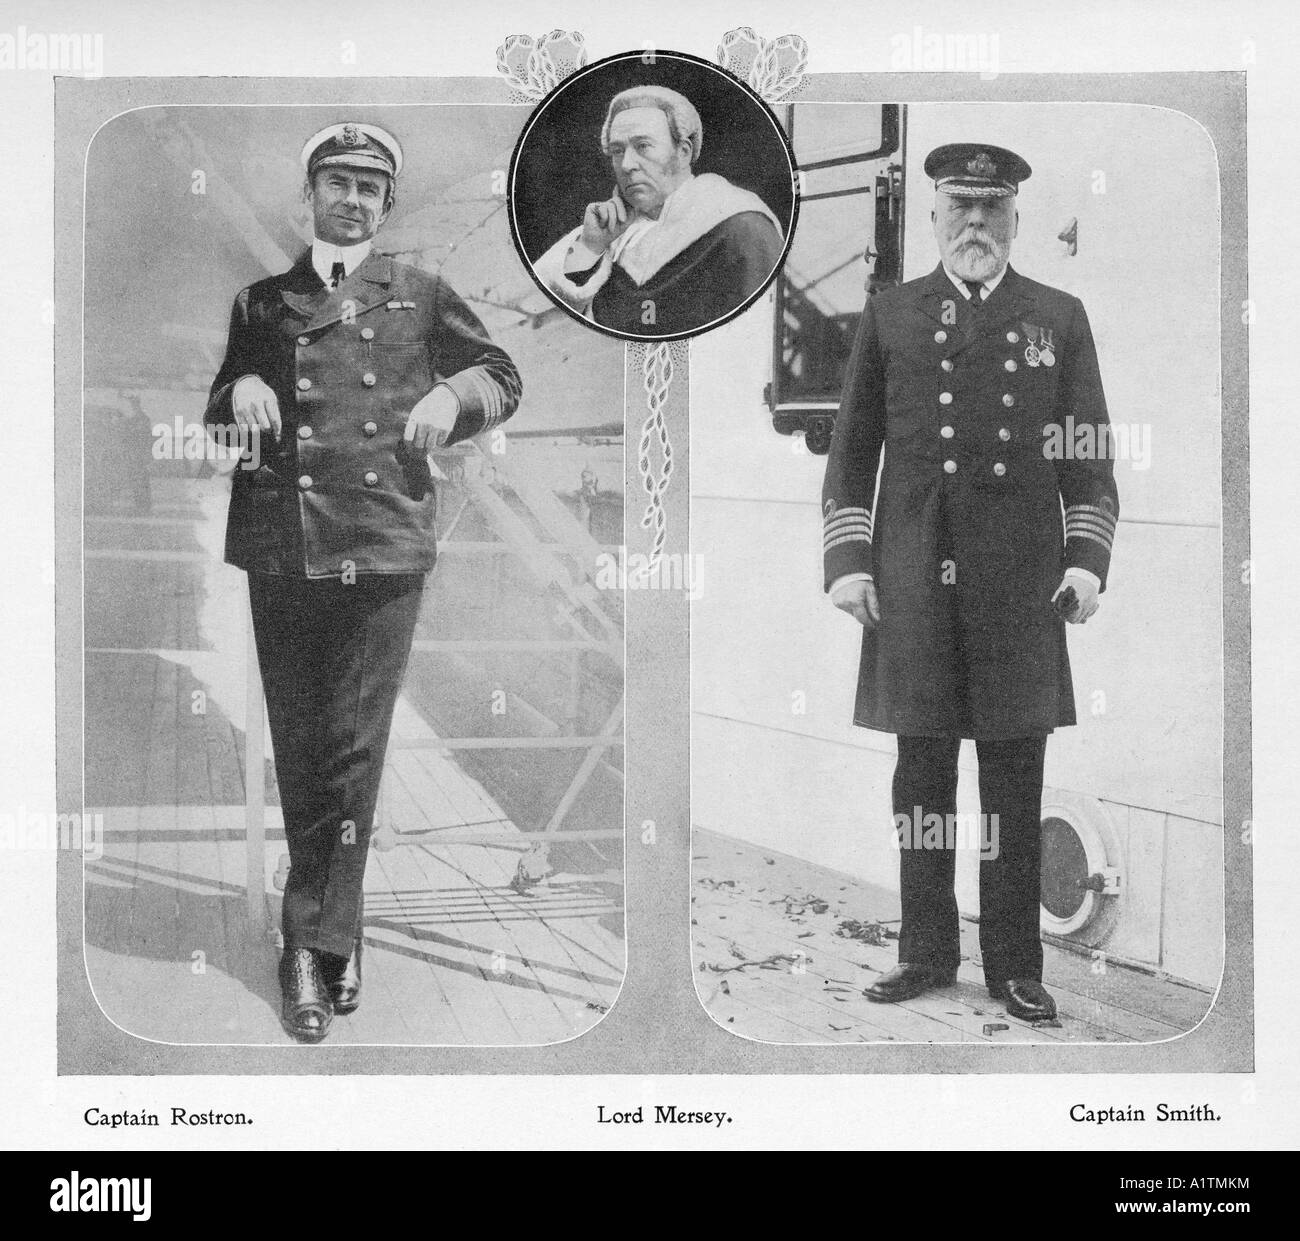 Captain Rostron captain of Carpathia which rescued Titanic survivors on left.  Captain Smith of the Titanic, right. - Stock Image